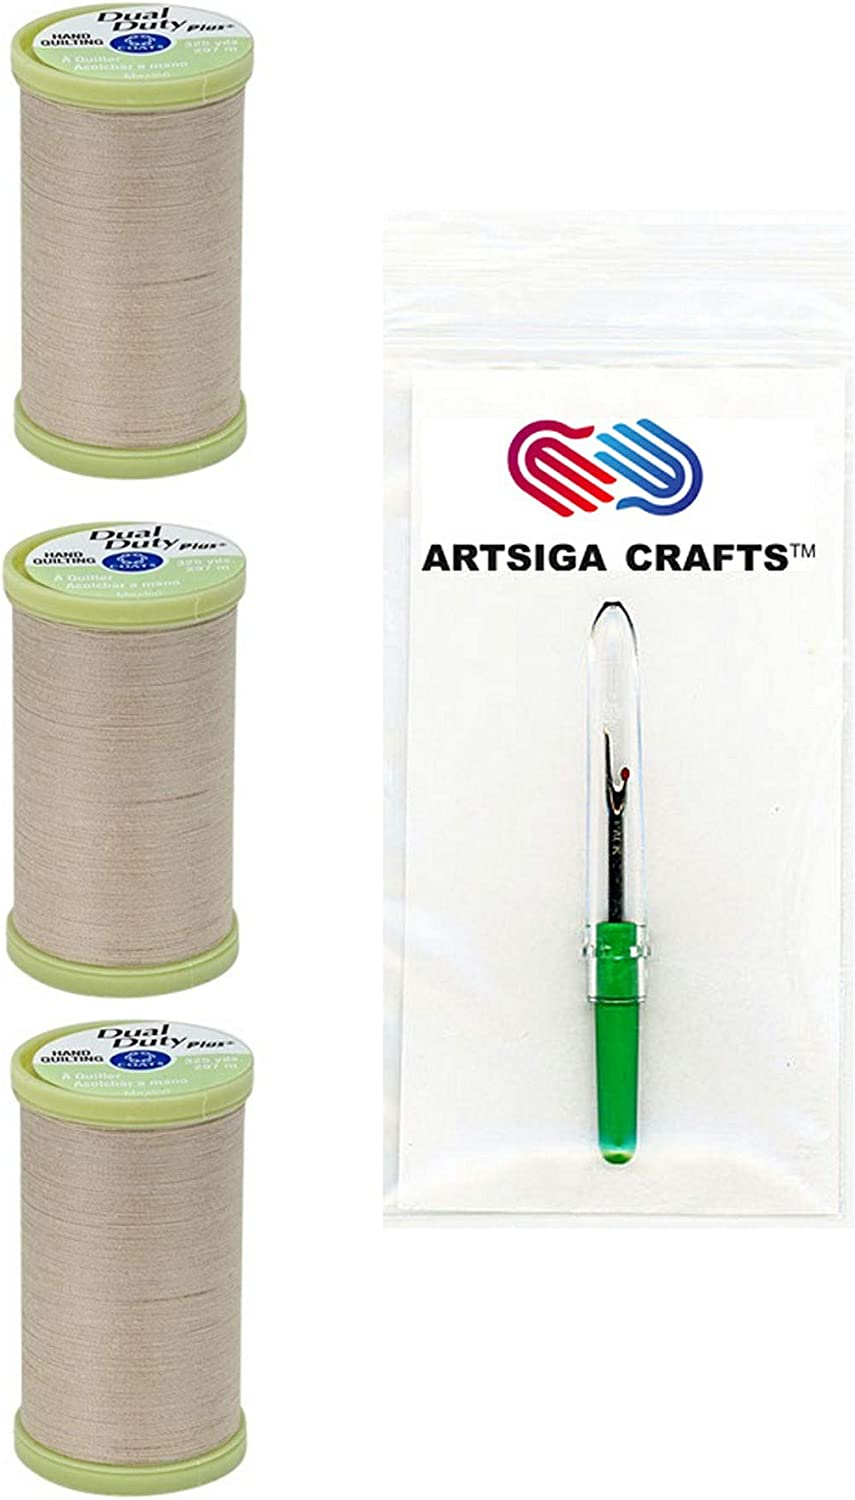 Ecru Bundle with 1 Artsiga Crafts Seam Ripper S960-8030-3P Coats /& Clark Sewing Thread Dual Duty Plus Hand Quilting Cotton Thread 325 Yards 3-Pack